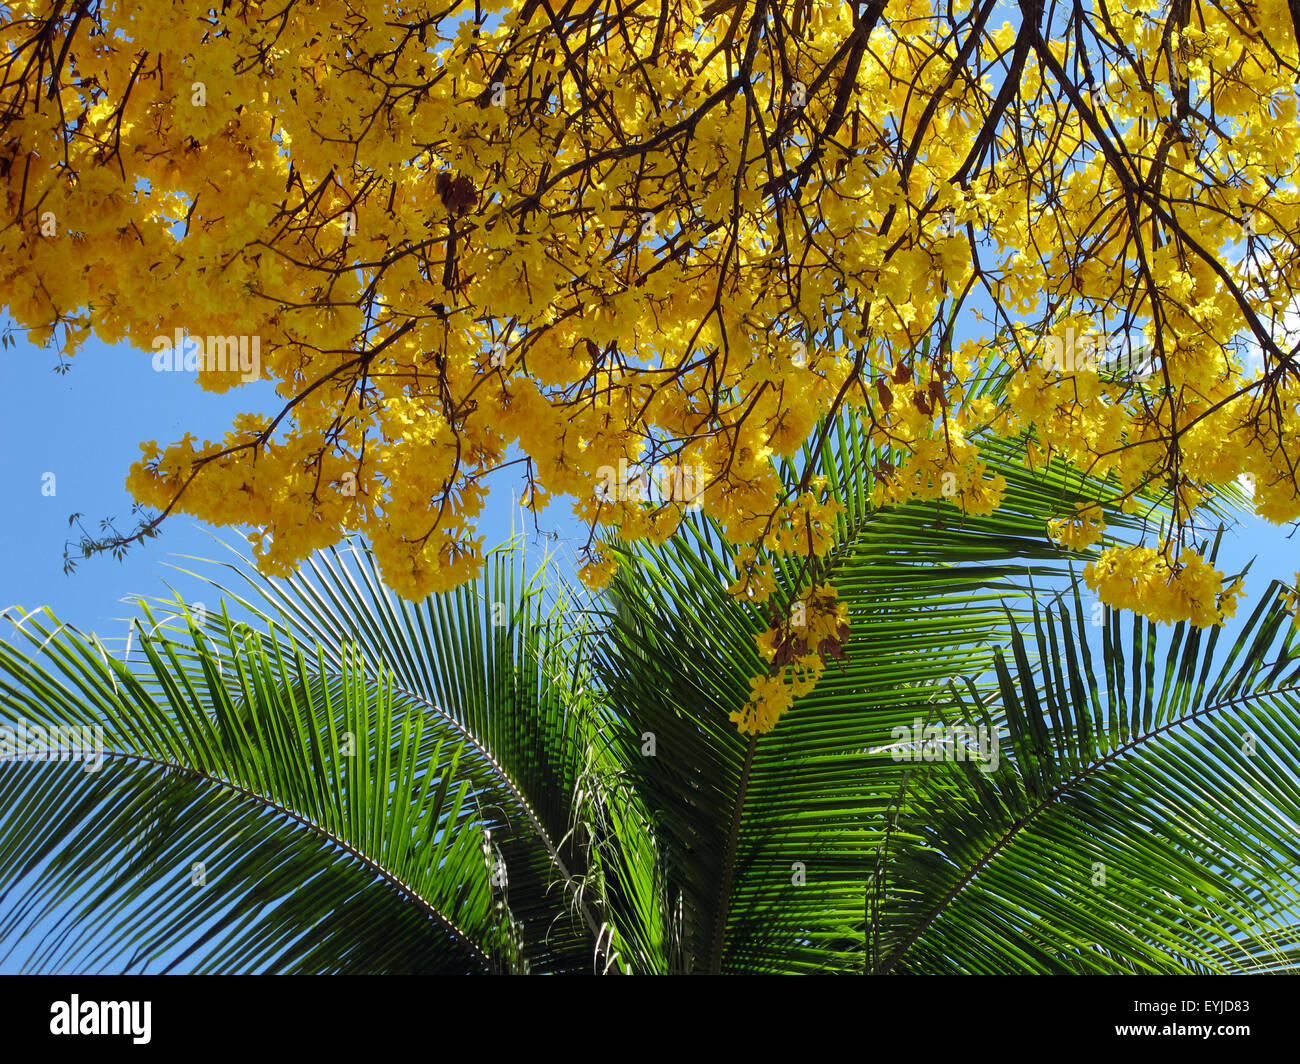 Guayacan Tree Branches With Yellow Flowers And Palm Tree Leaves